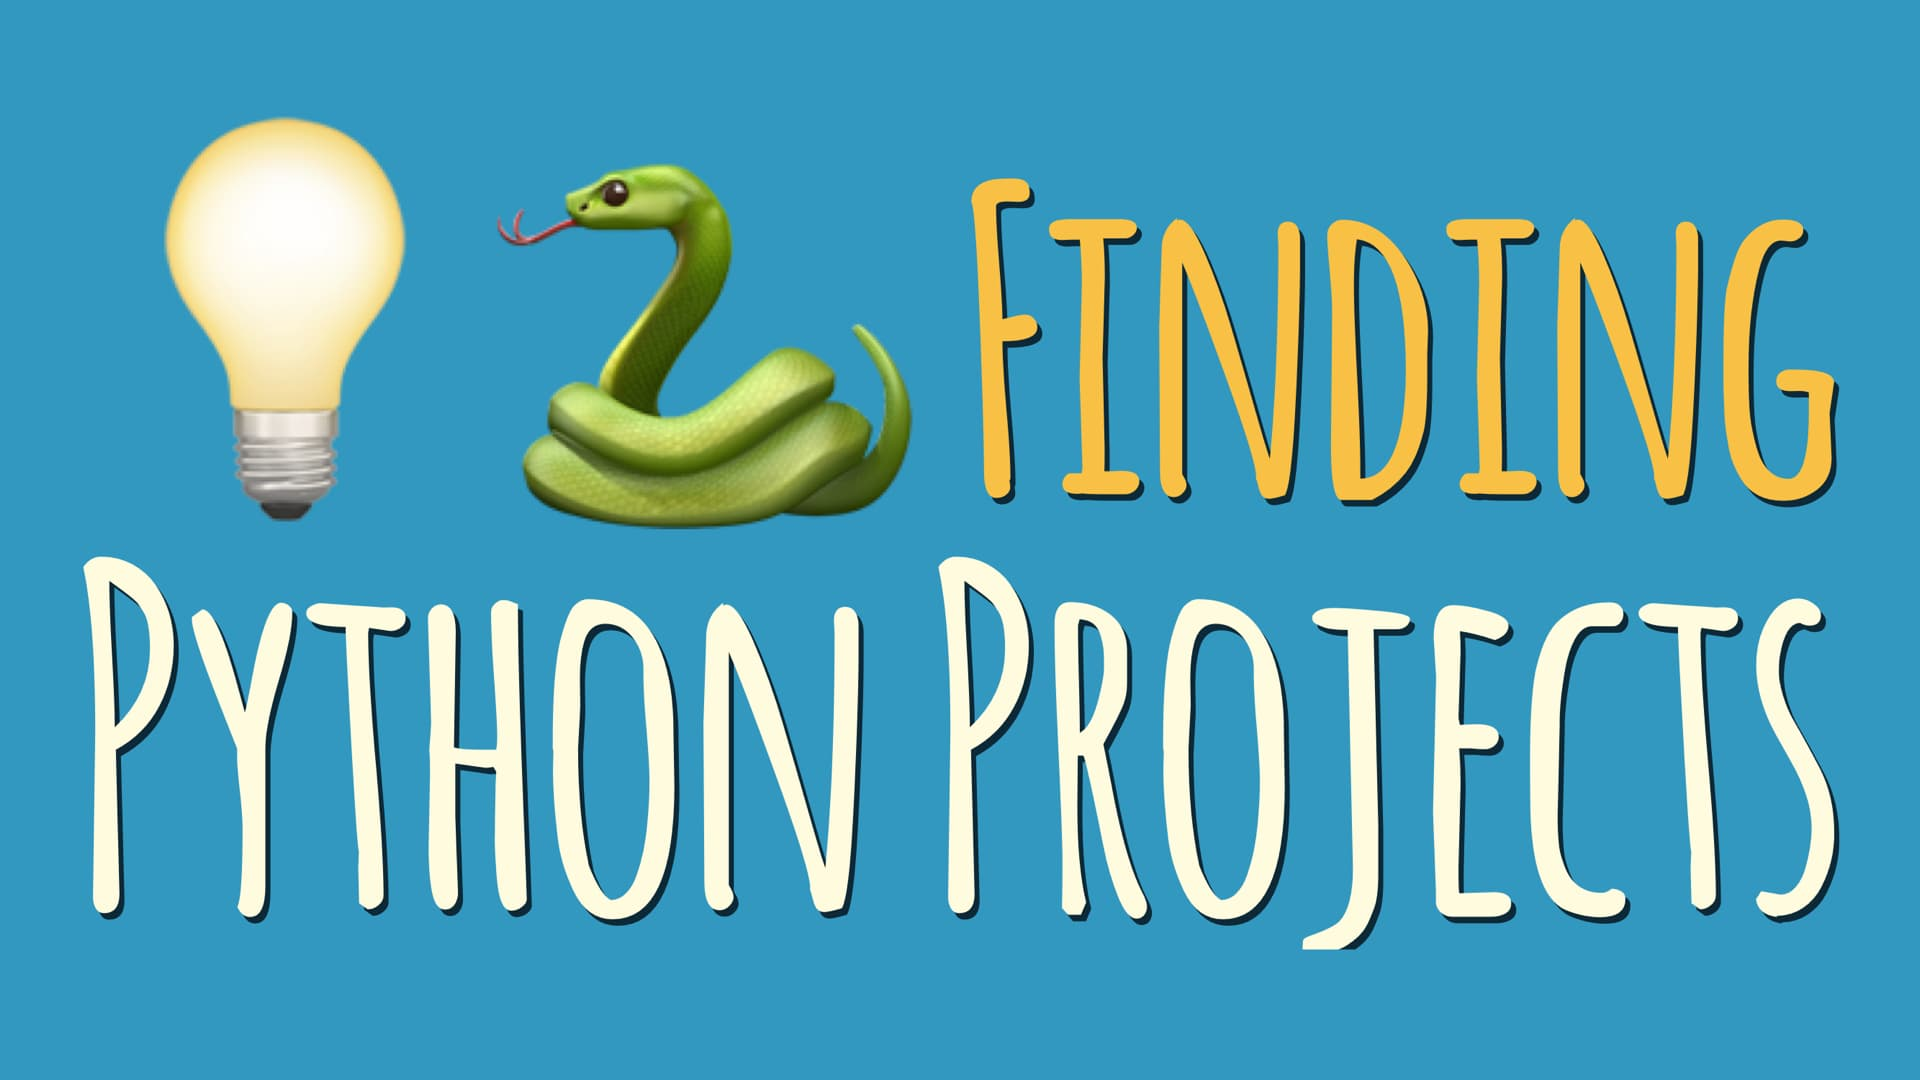 Finding Python Projects